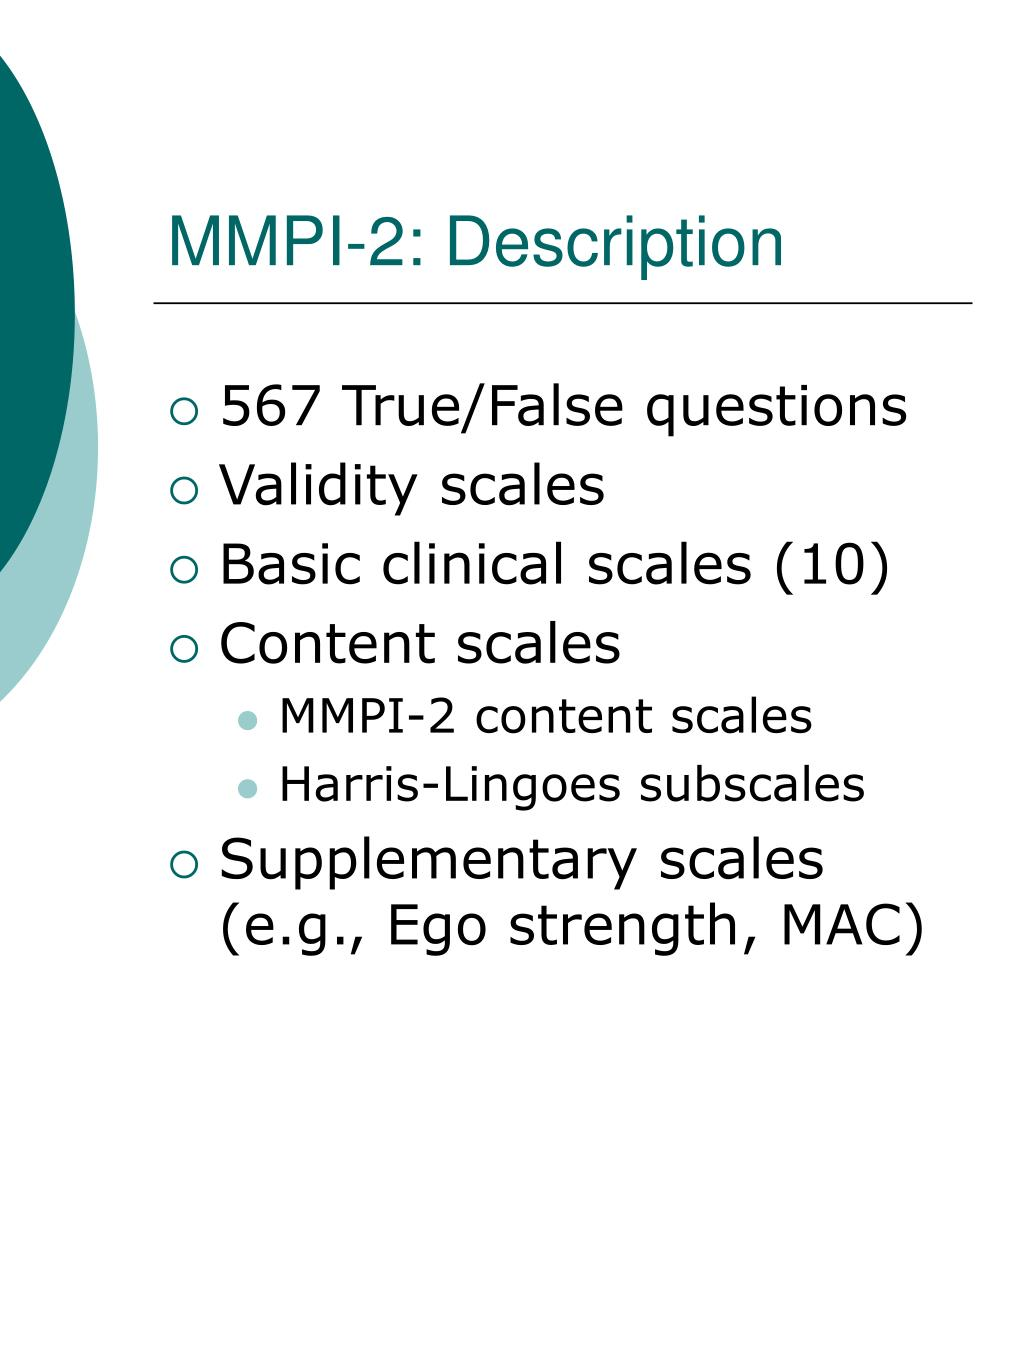 MMPI-2: Description